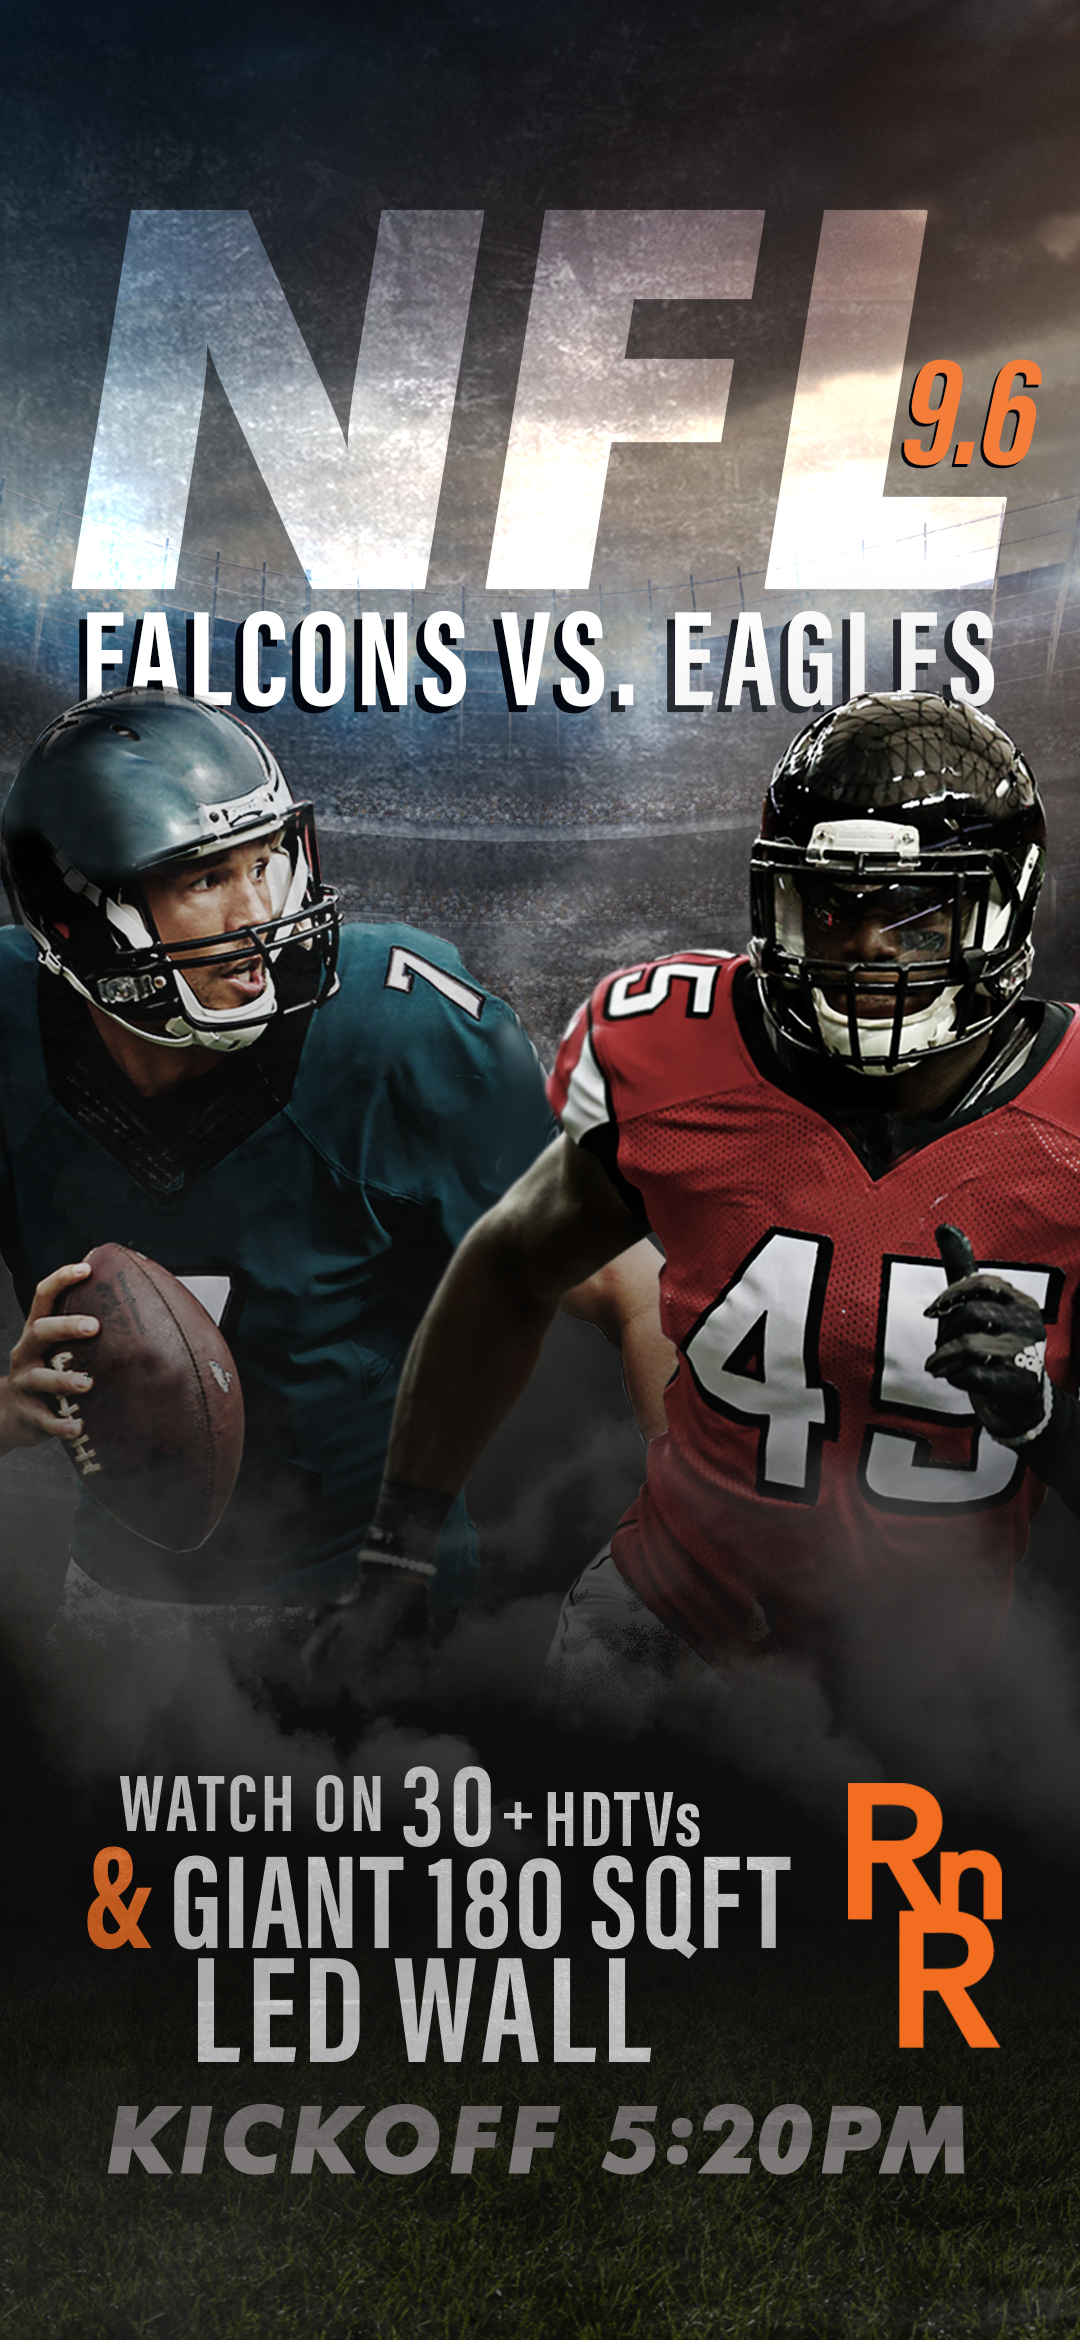 Nfl Is Back Falcons Vs Eagles 30 Hdtvs And A Giant Led Wall Make Rnrscottsdale Your 1 Draft Pick For Watching Any Game Football Helmets Oldtown Falcons